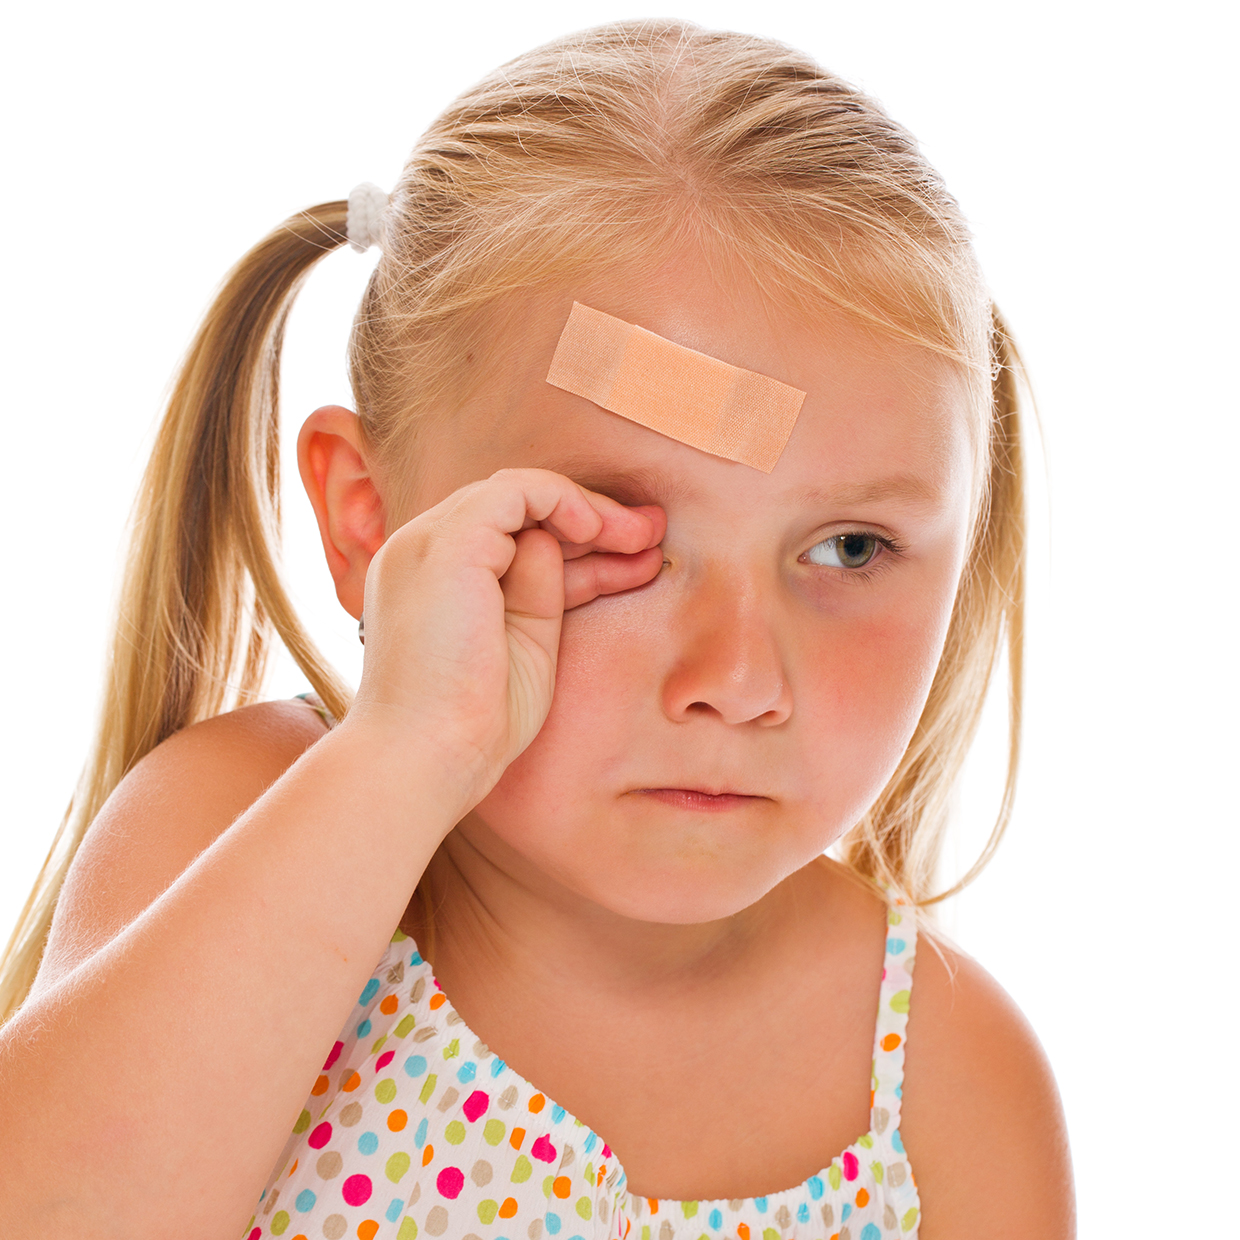 Small girl crying with a band-aid on her forehead